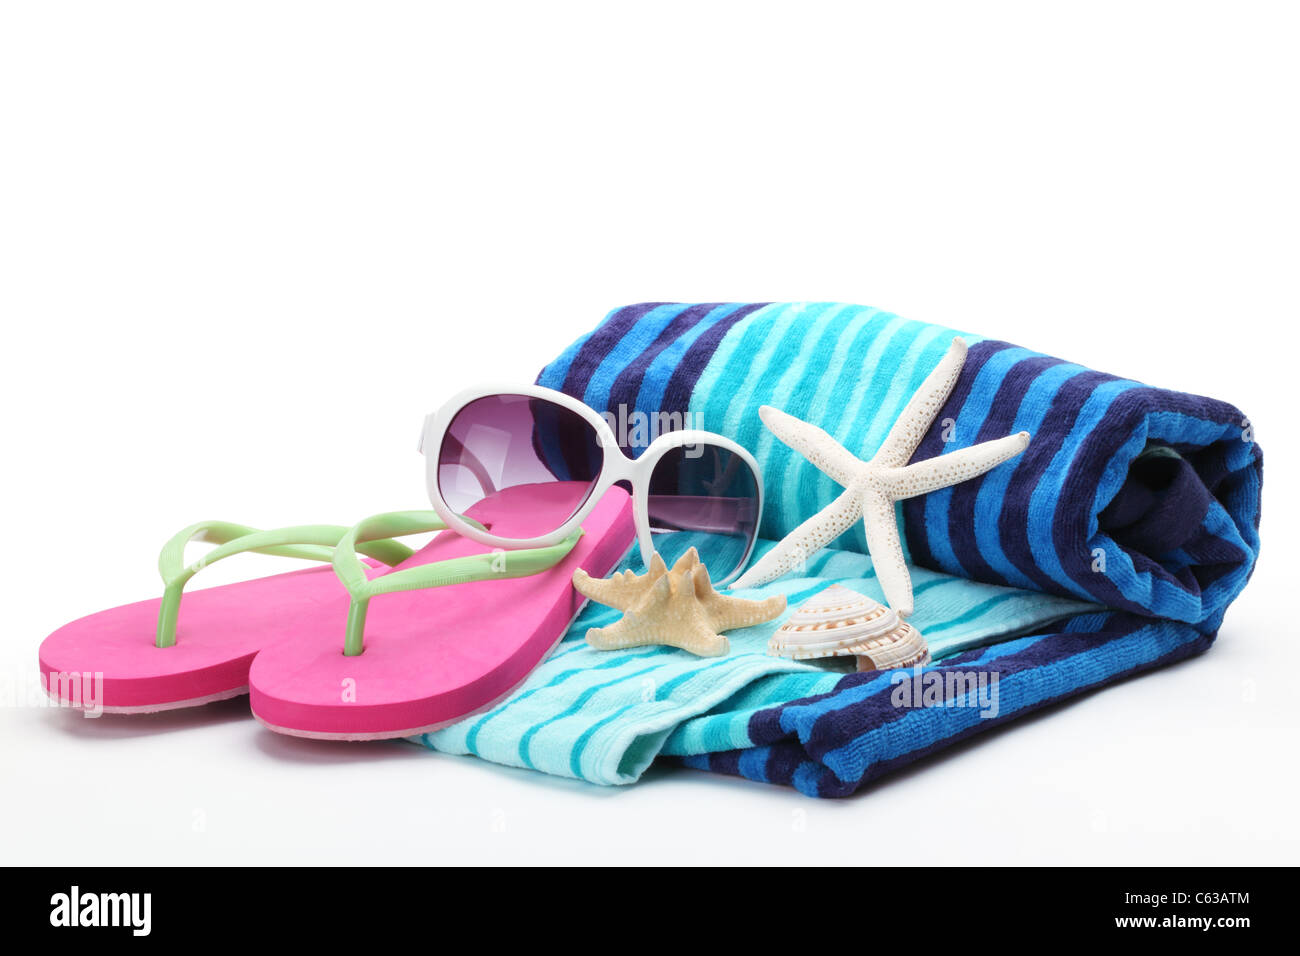 11b95536646ab9 Beach accessories with flip-flops,towel and sunglasses on white background.  - Stock